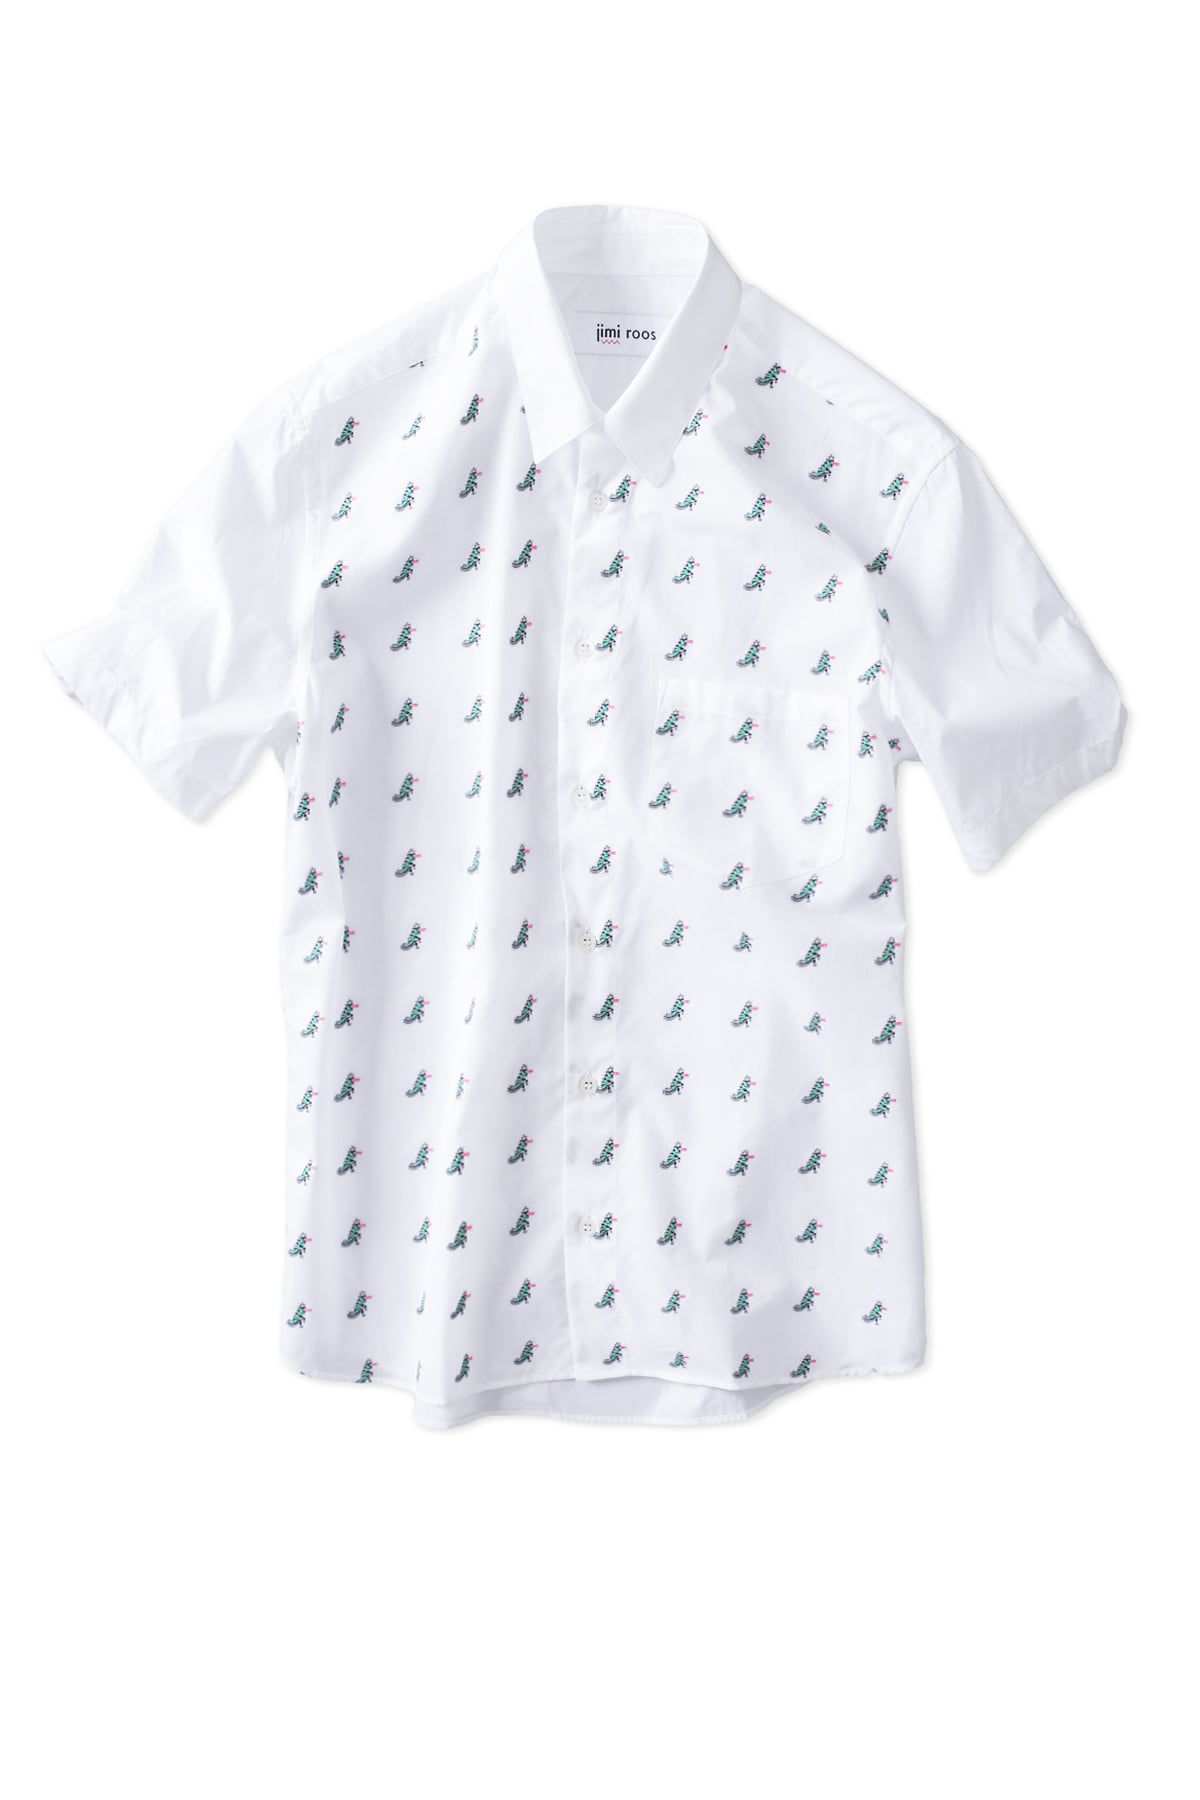 jimi roos : Crock Shirt (White)